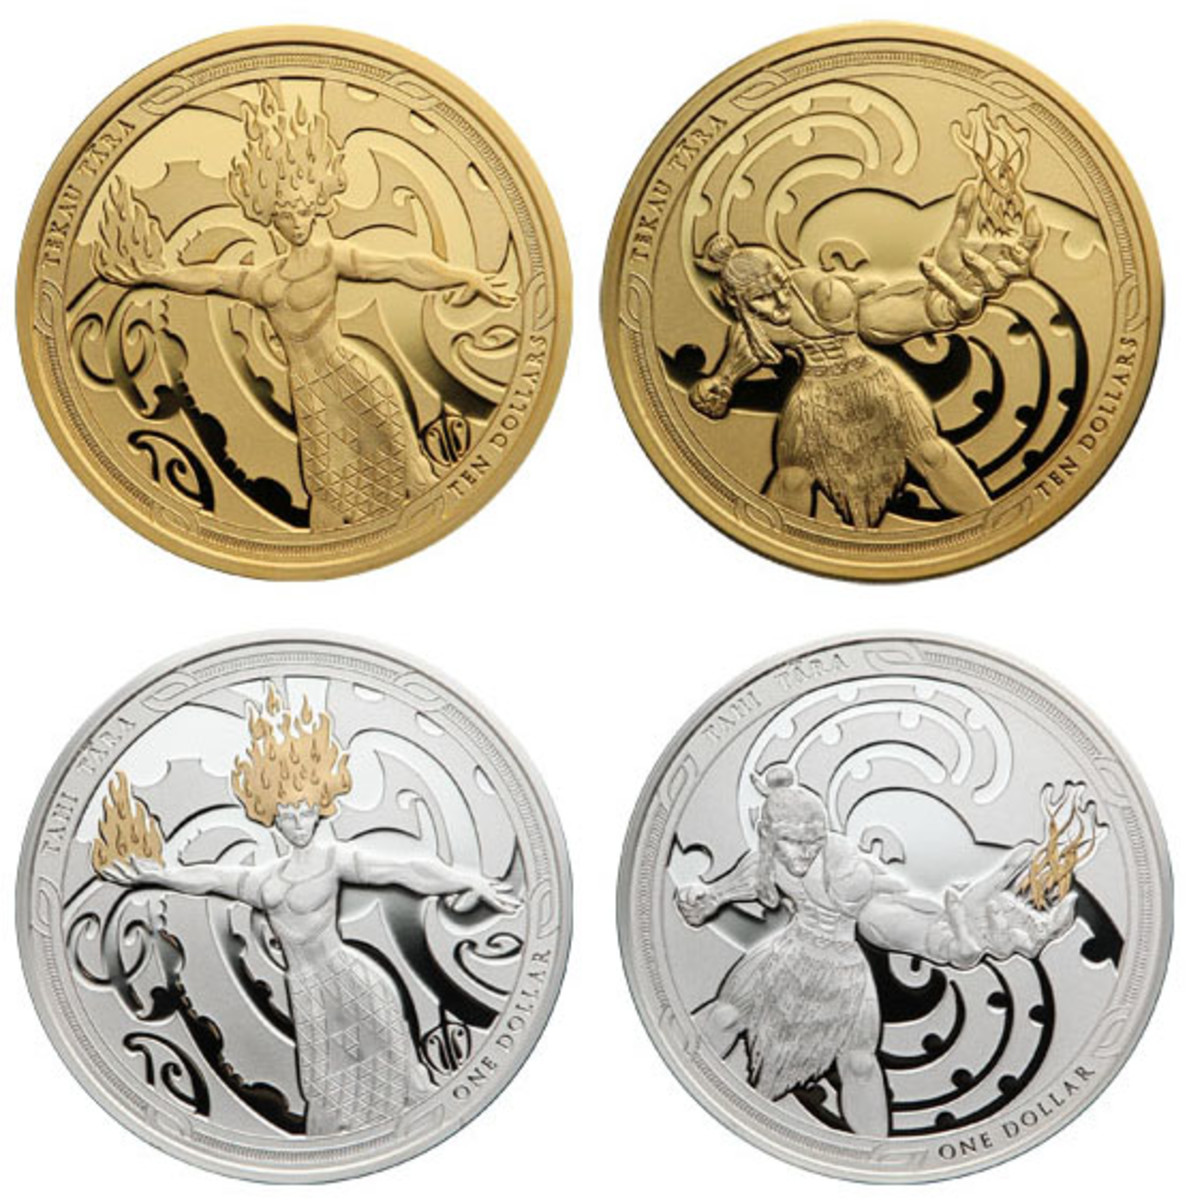 Fire goddess Mahuika (obverses) is poised to throw a fiery curve ball at recalcitrant grandson Māui (reverses) of gold $10s and partially-gilded silver proof $1s, the latest in a New Zealand series telling the legends of the cultural hero Maui-tikitiki. (Images courtesy of New Zealand Post.)